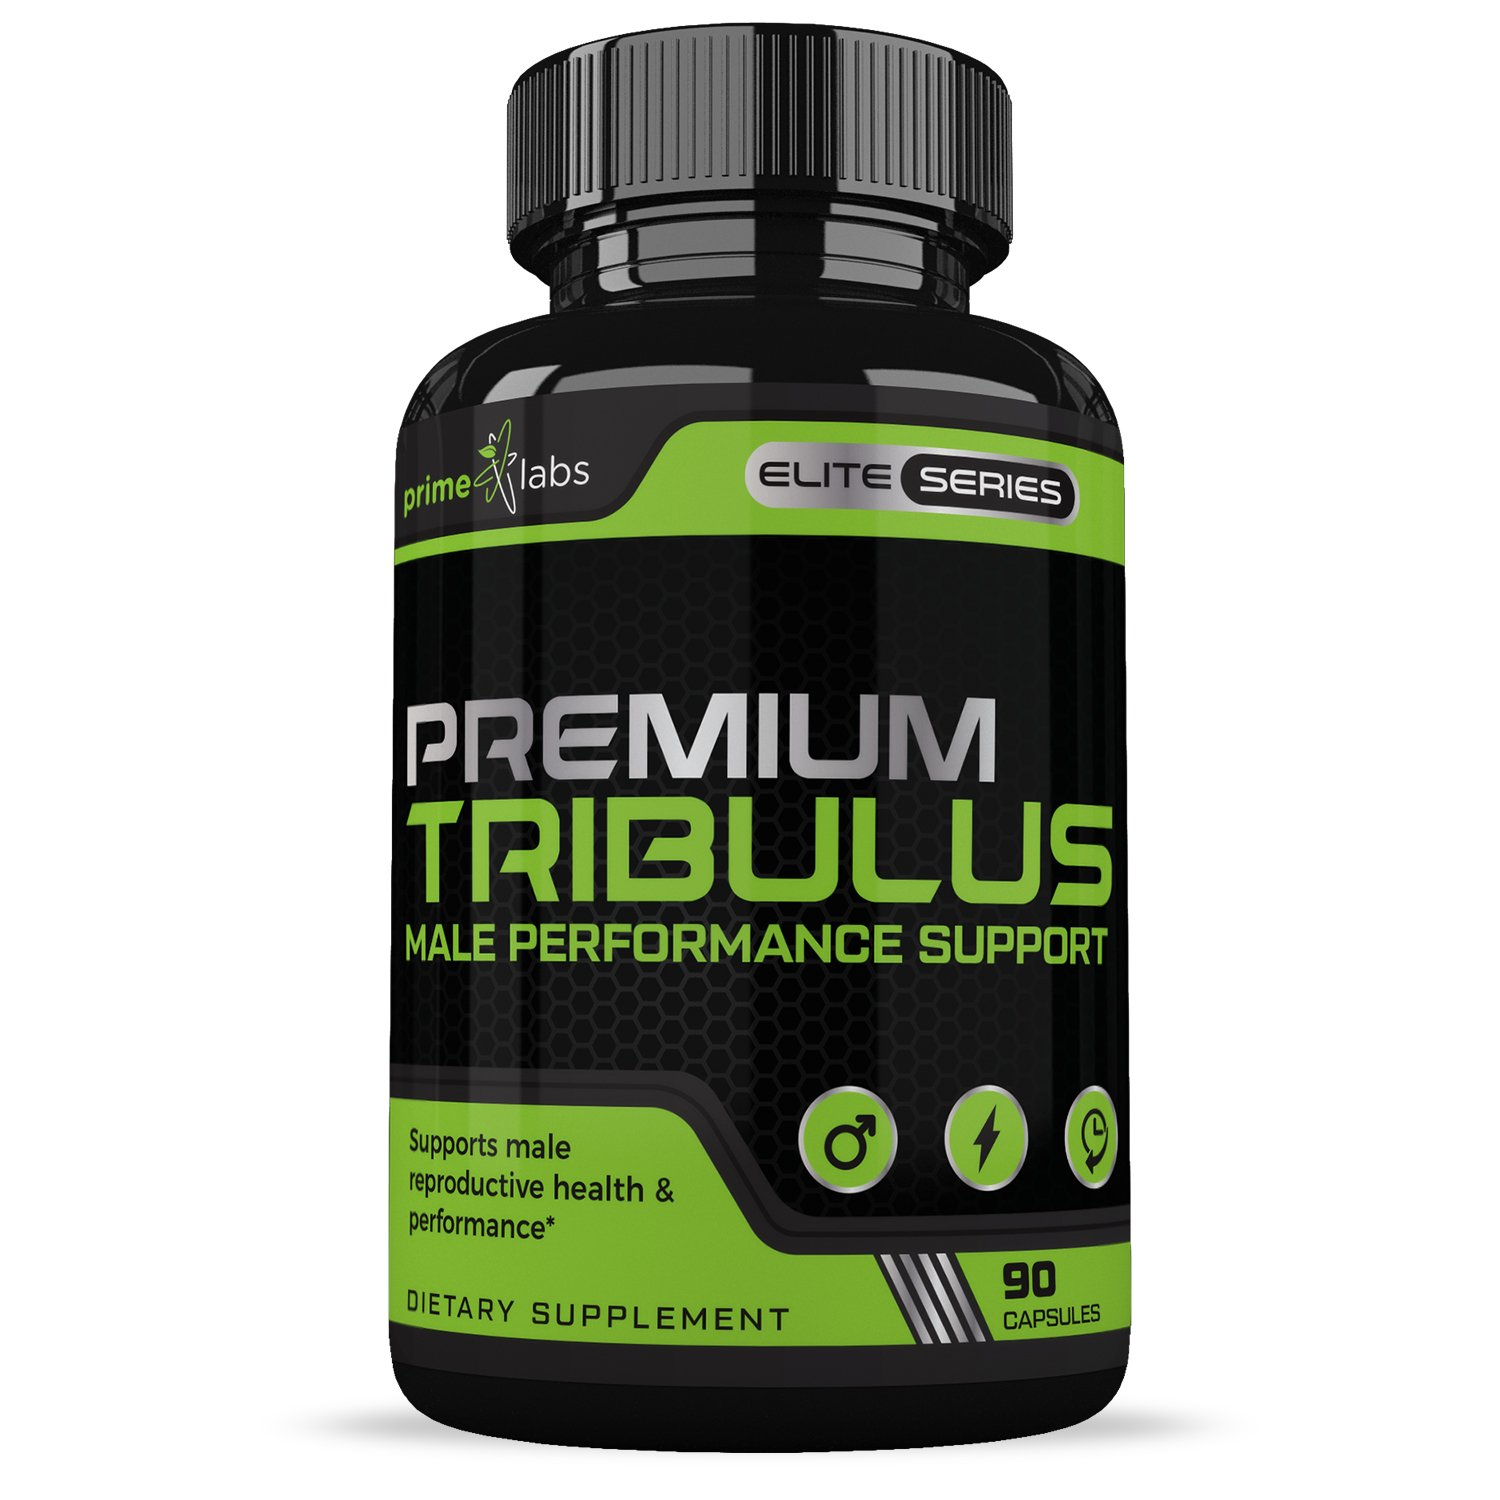 Premium Tribulus Terrestris :: Male Performance Support :: Promotes Reproductive Health :: Encourages Healthy Workouts Via Nitric Acid Release :: All Natural Supplement :: 90 Capsules Per Bottle